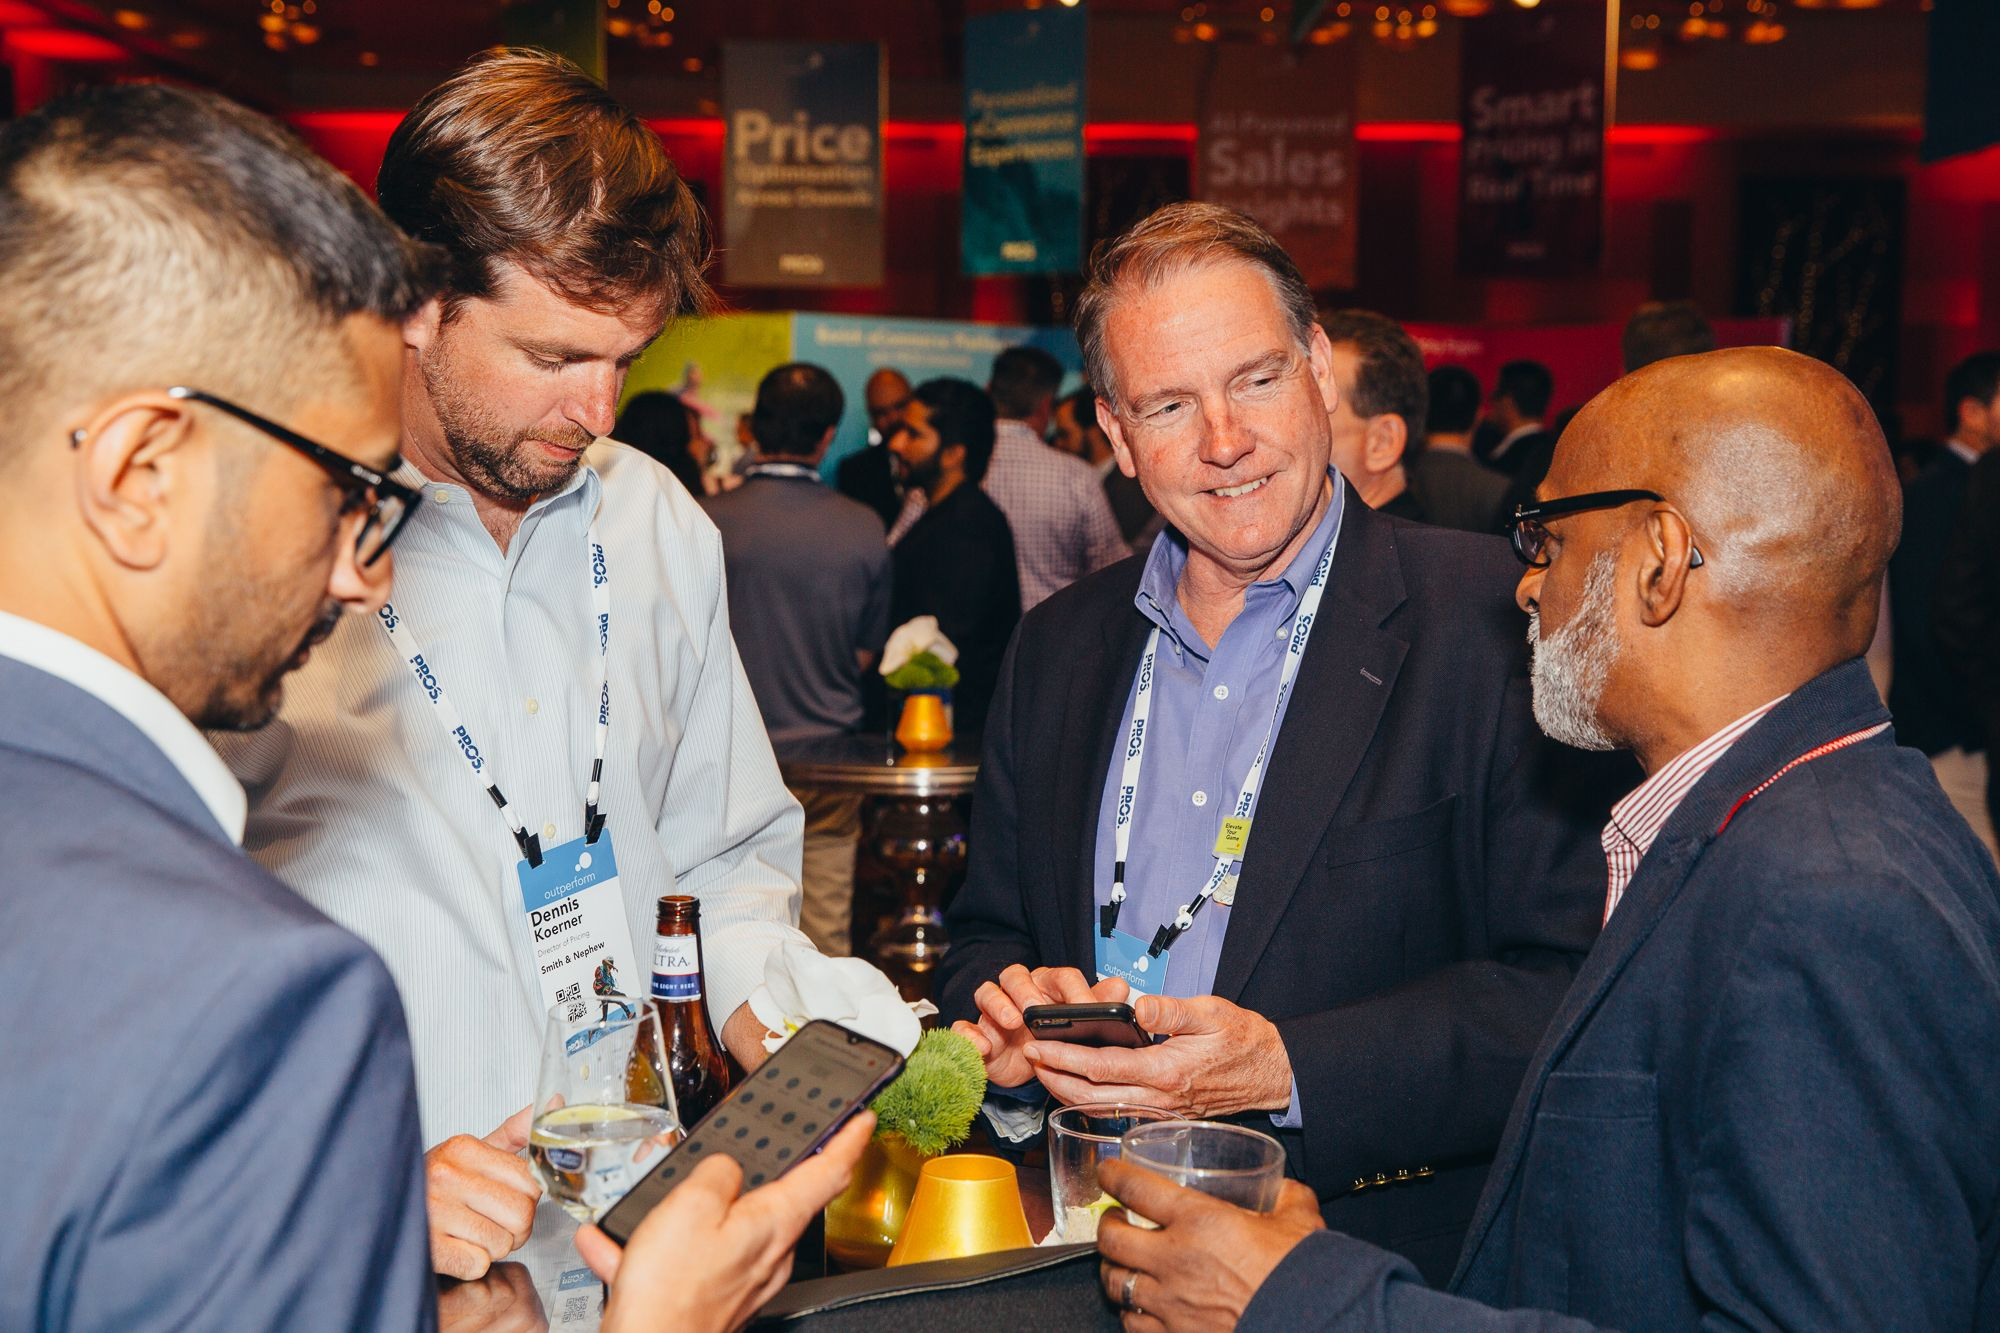 Networking during the PROS Outperform 2019 conference in Las Vegas